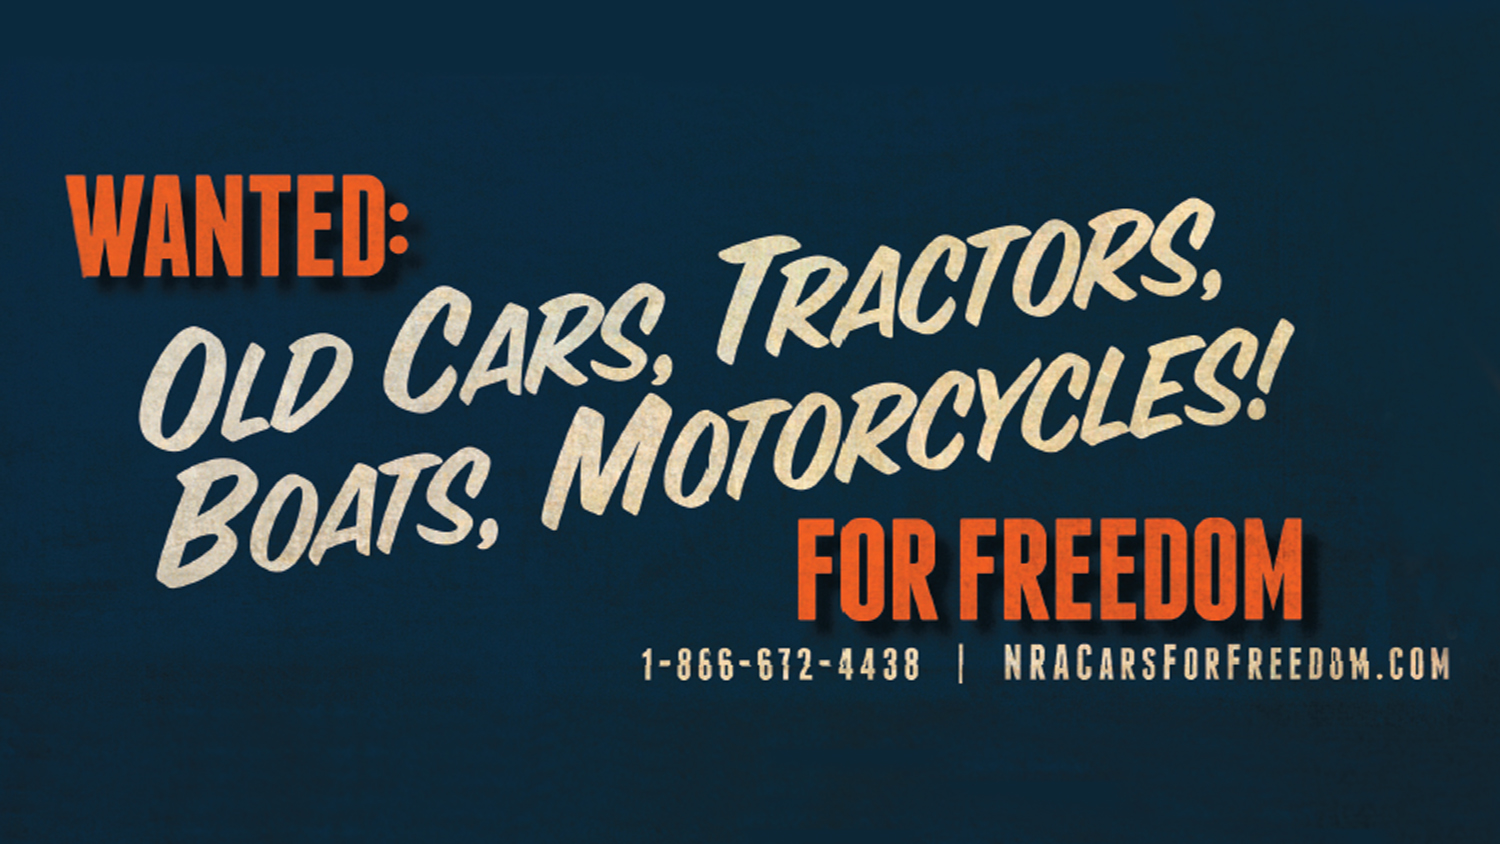 Wanted: Cars for Freedom